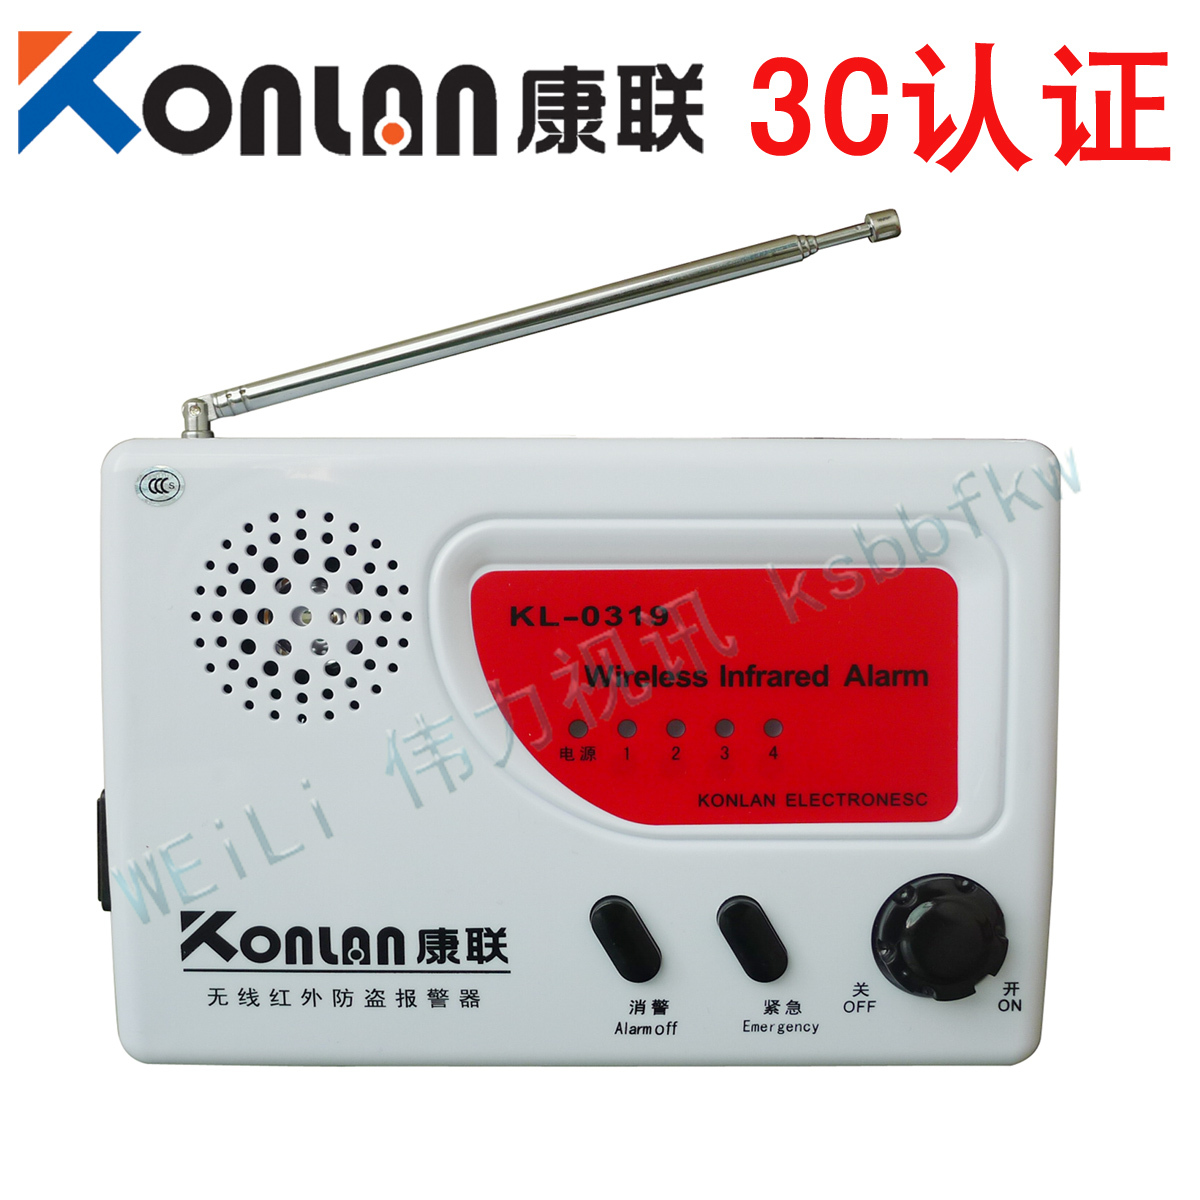 Honglian Kl 0319a Wireless Infrared Alarm Home Shop On Site Burglar Intruder Set Two Probes